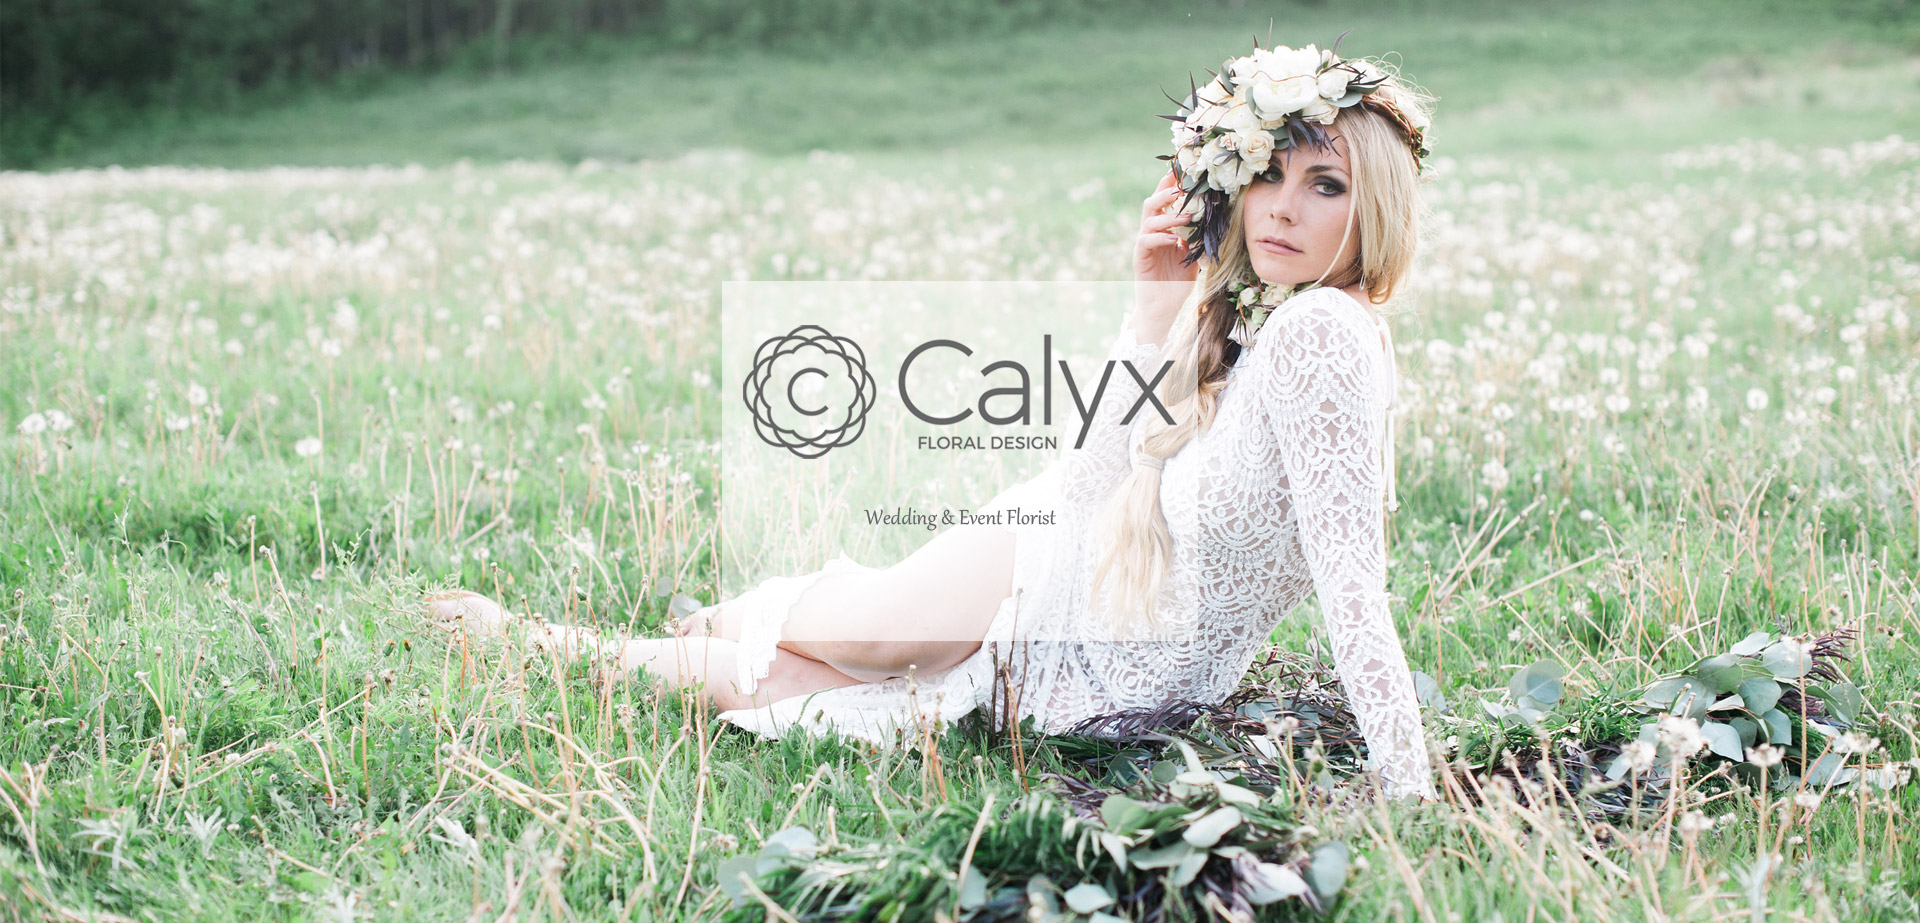 Boho Bride with Large White Floral Crown and Floral Neckpiece